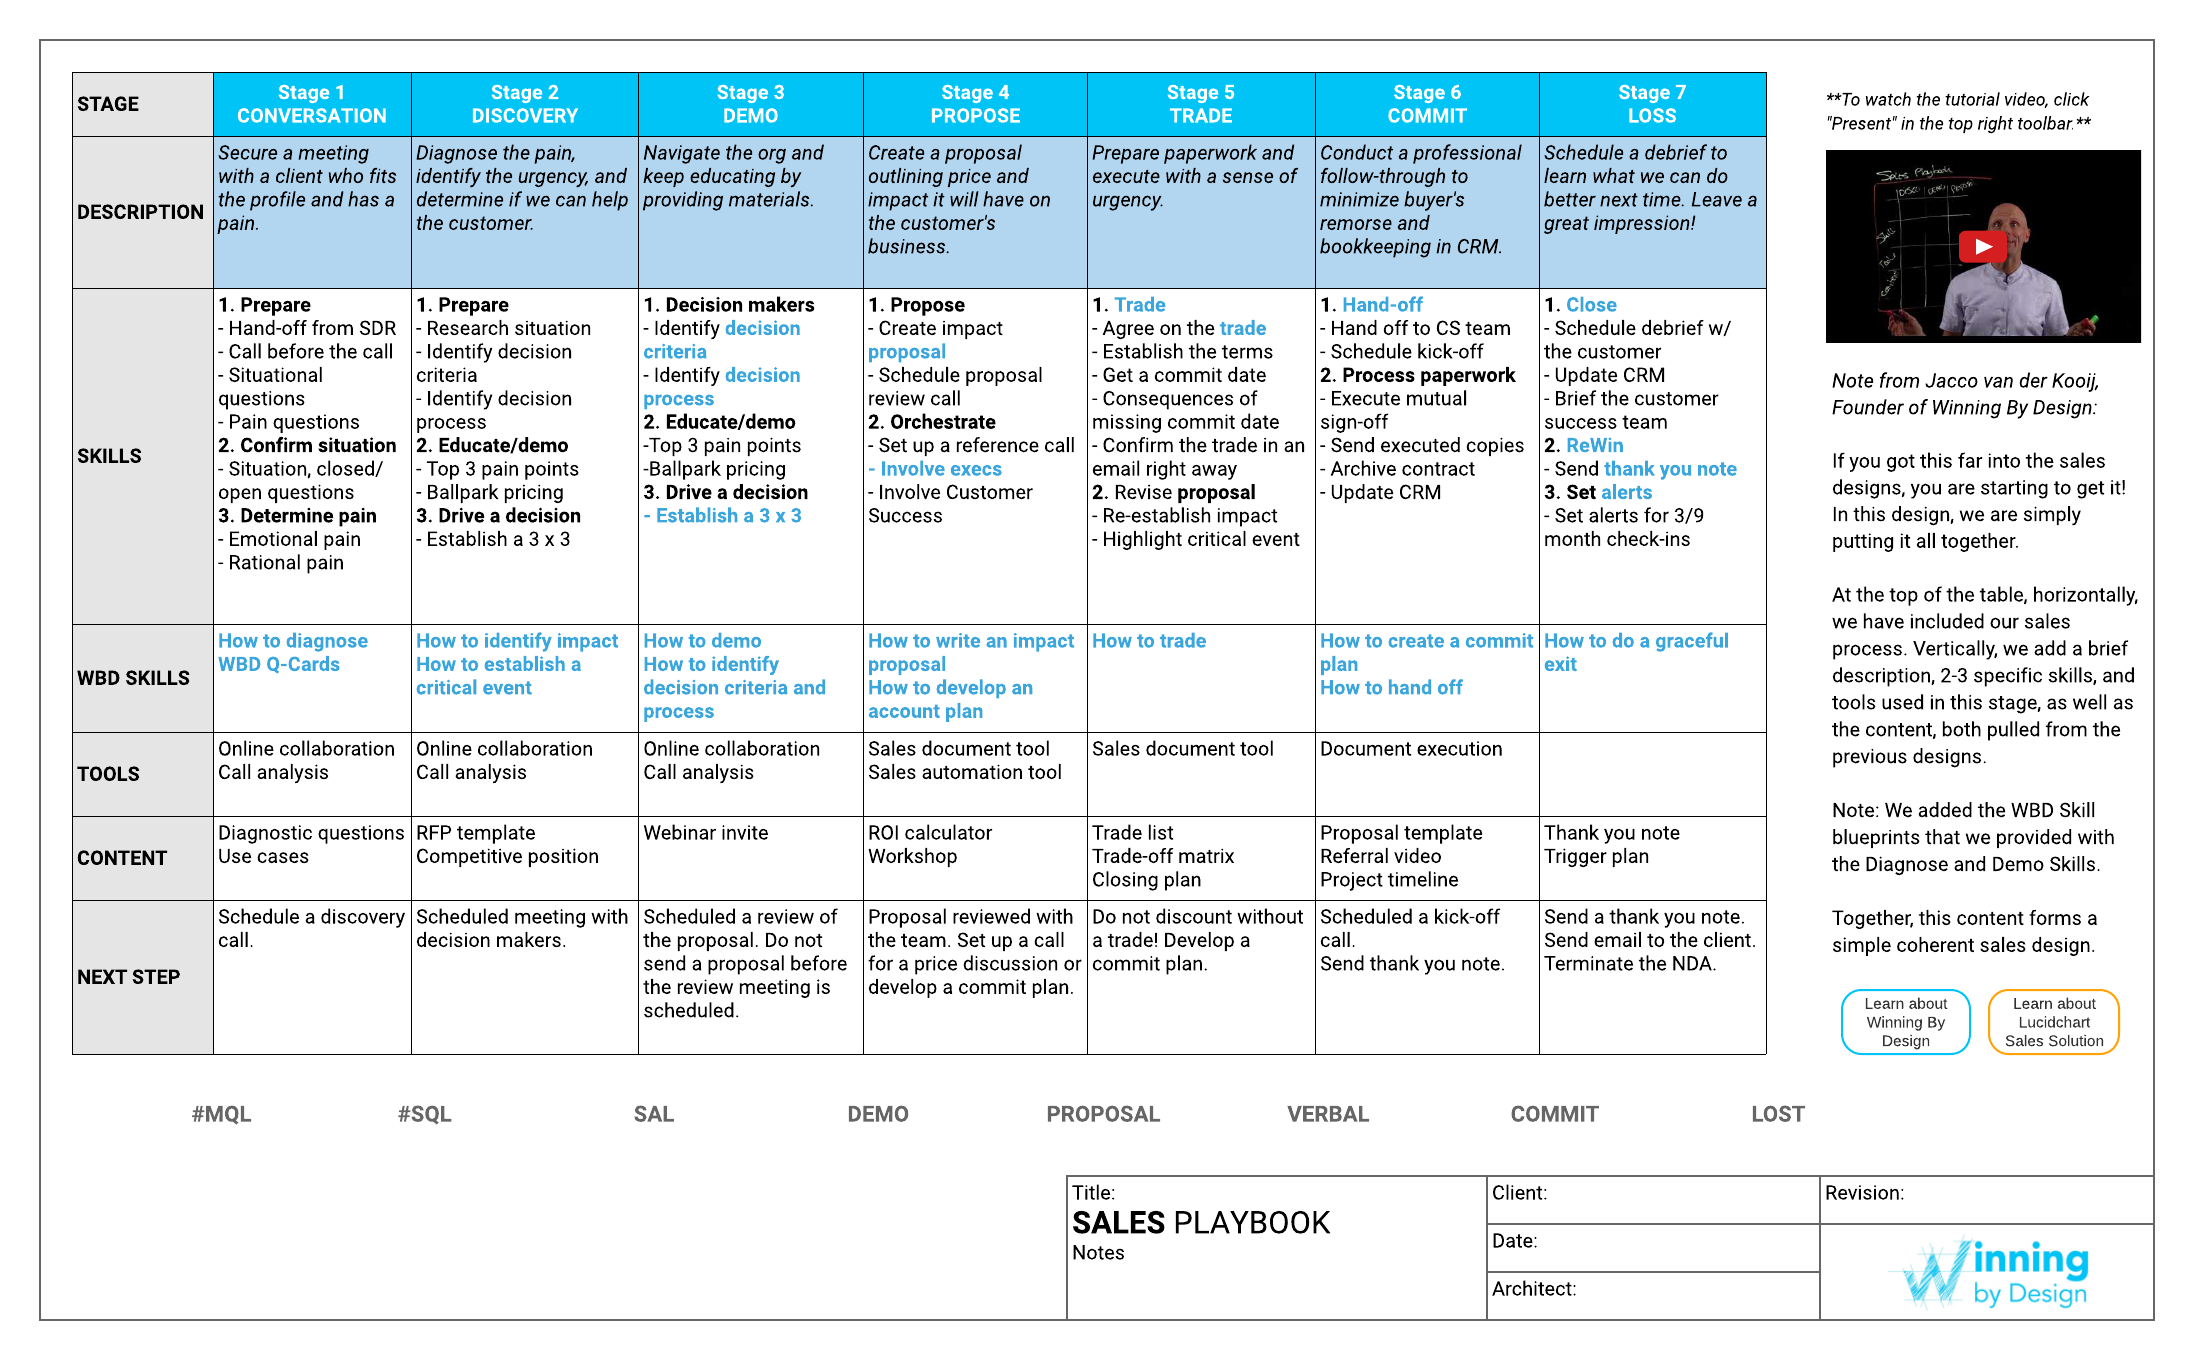 Sales Playbook Template Doc